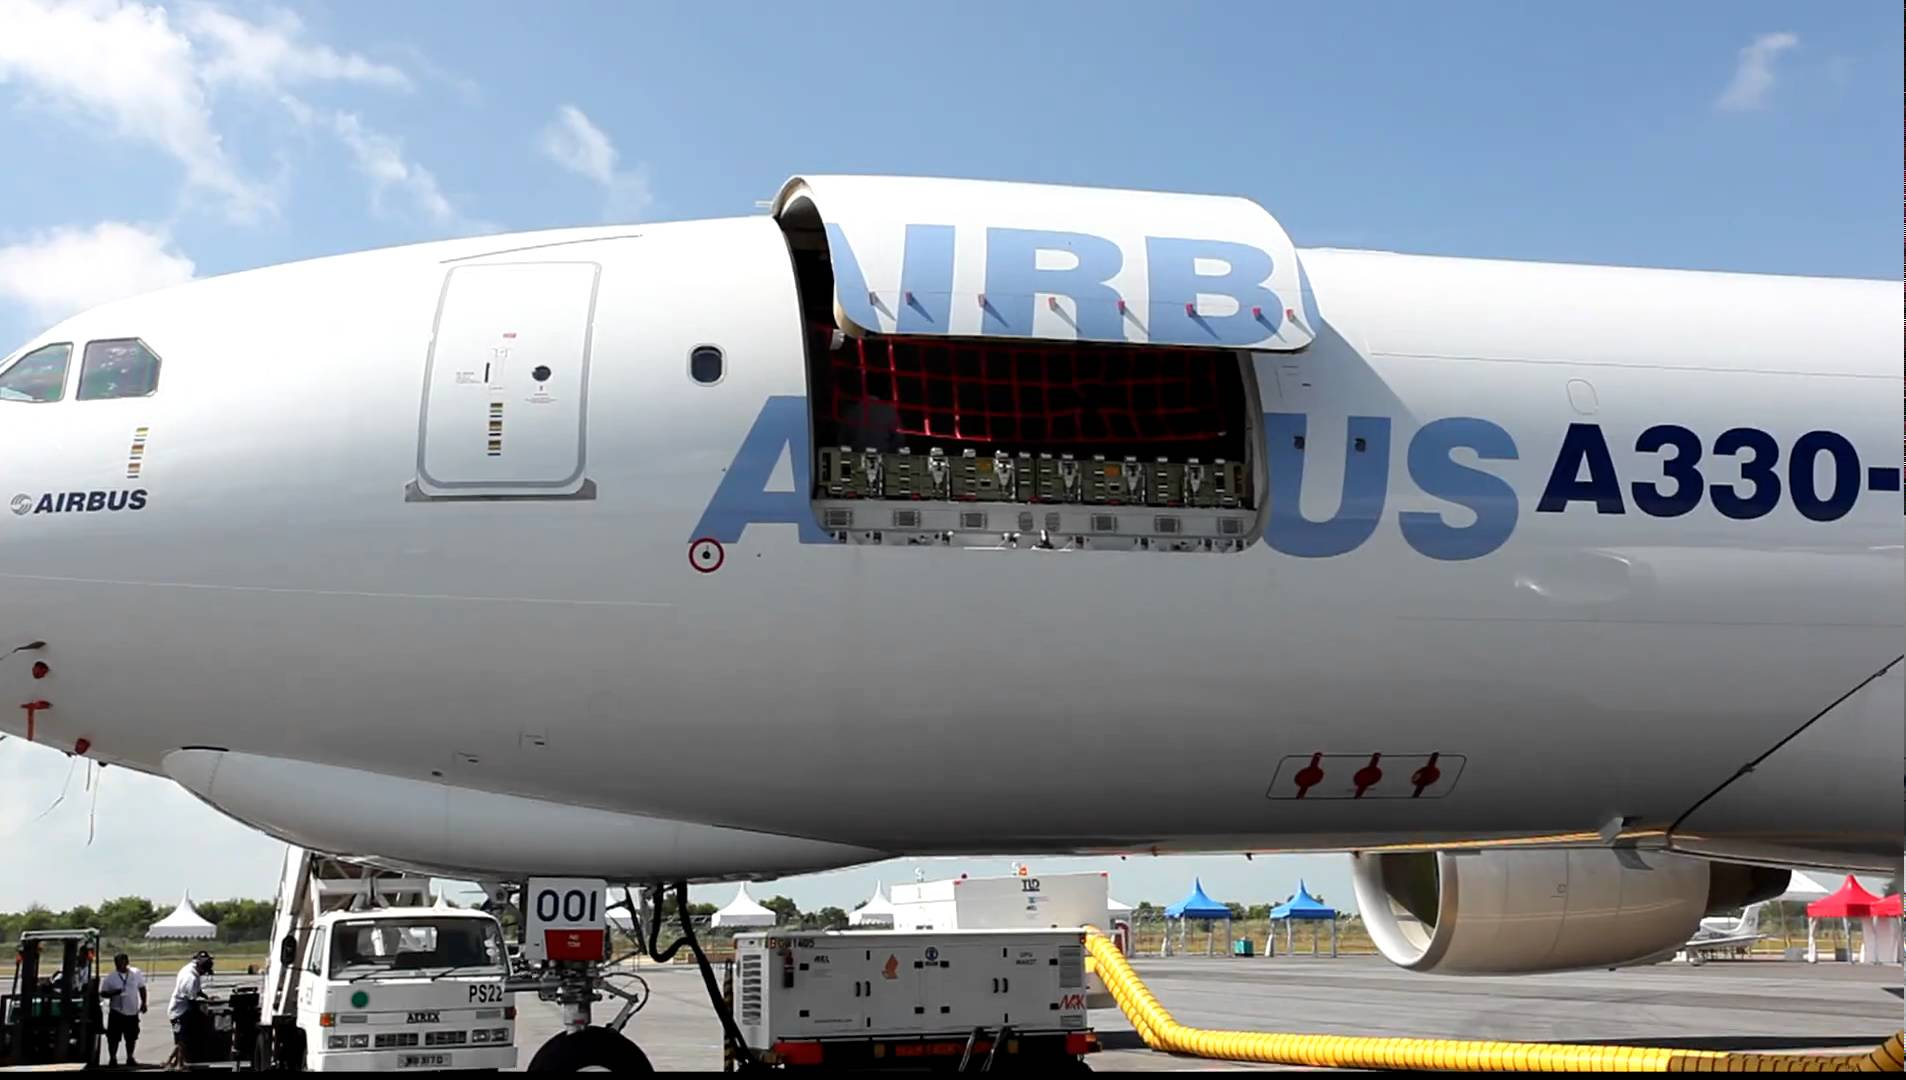 AIRBUS A330-200 FREIGHTER MD CARGO DOOR AIRWORKS Engineering Advanced Systems. A contractor delivering efficient highly reliable engineering and ... & AIRBUS A330-200 FREIGHTER MD CARGO DOOR AIRWORKS Engineering ...